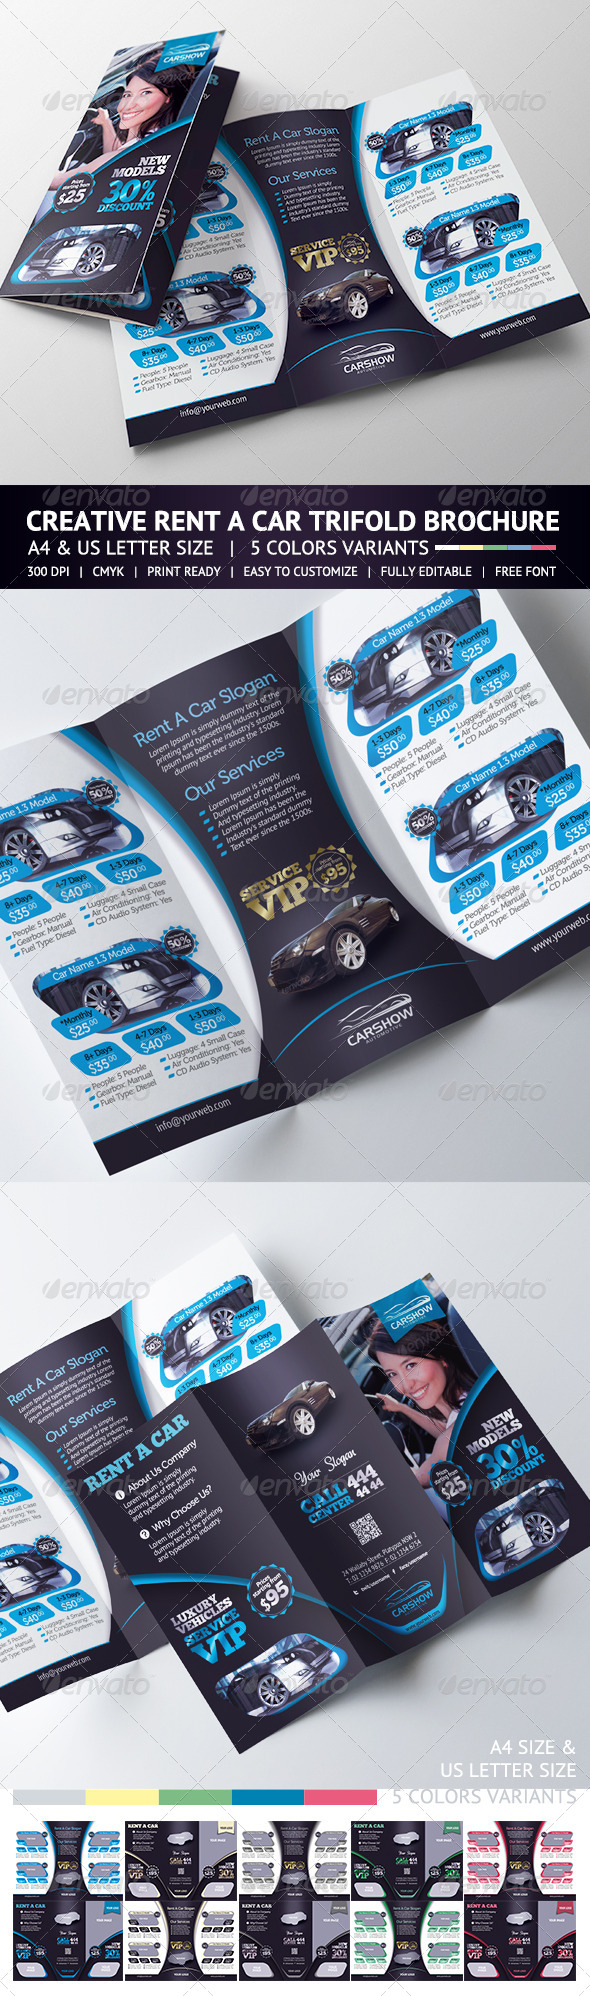 Rent A Car Trifold Brochure - Corporate Brochures